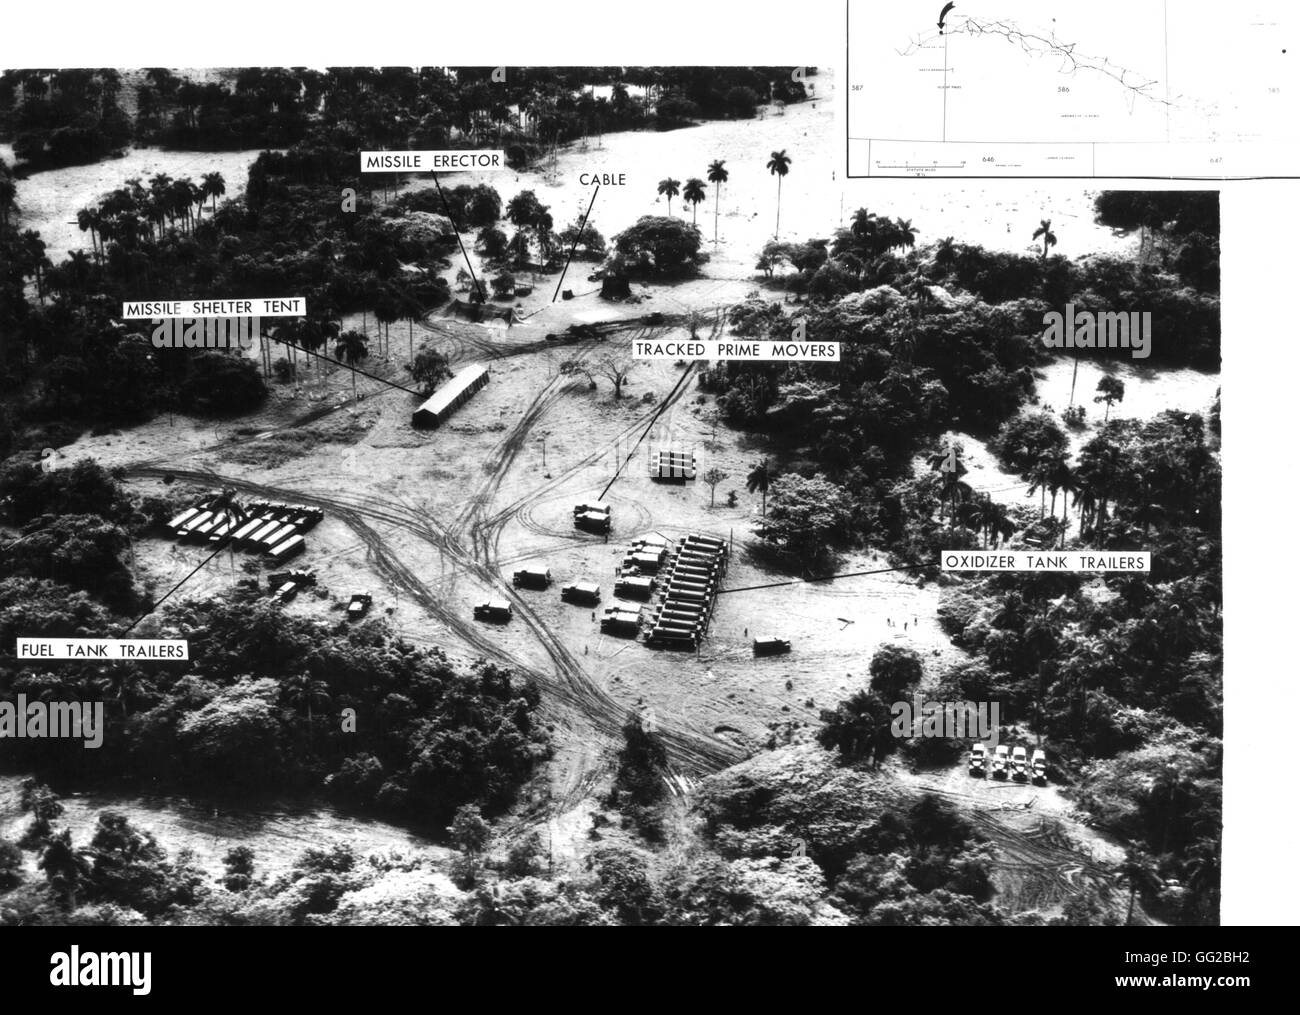 cuban missiles crisis san cristobal base in the foreground a row of vehicules and fuel tanks since october 14 a missiles shelter and another equipment